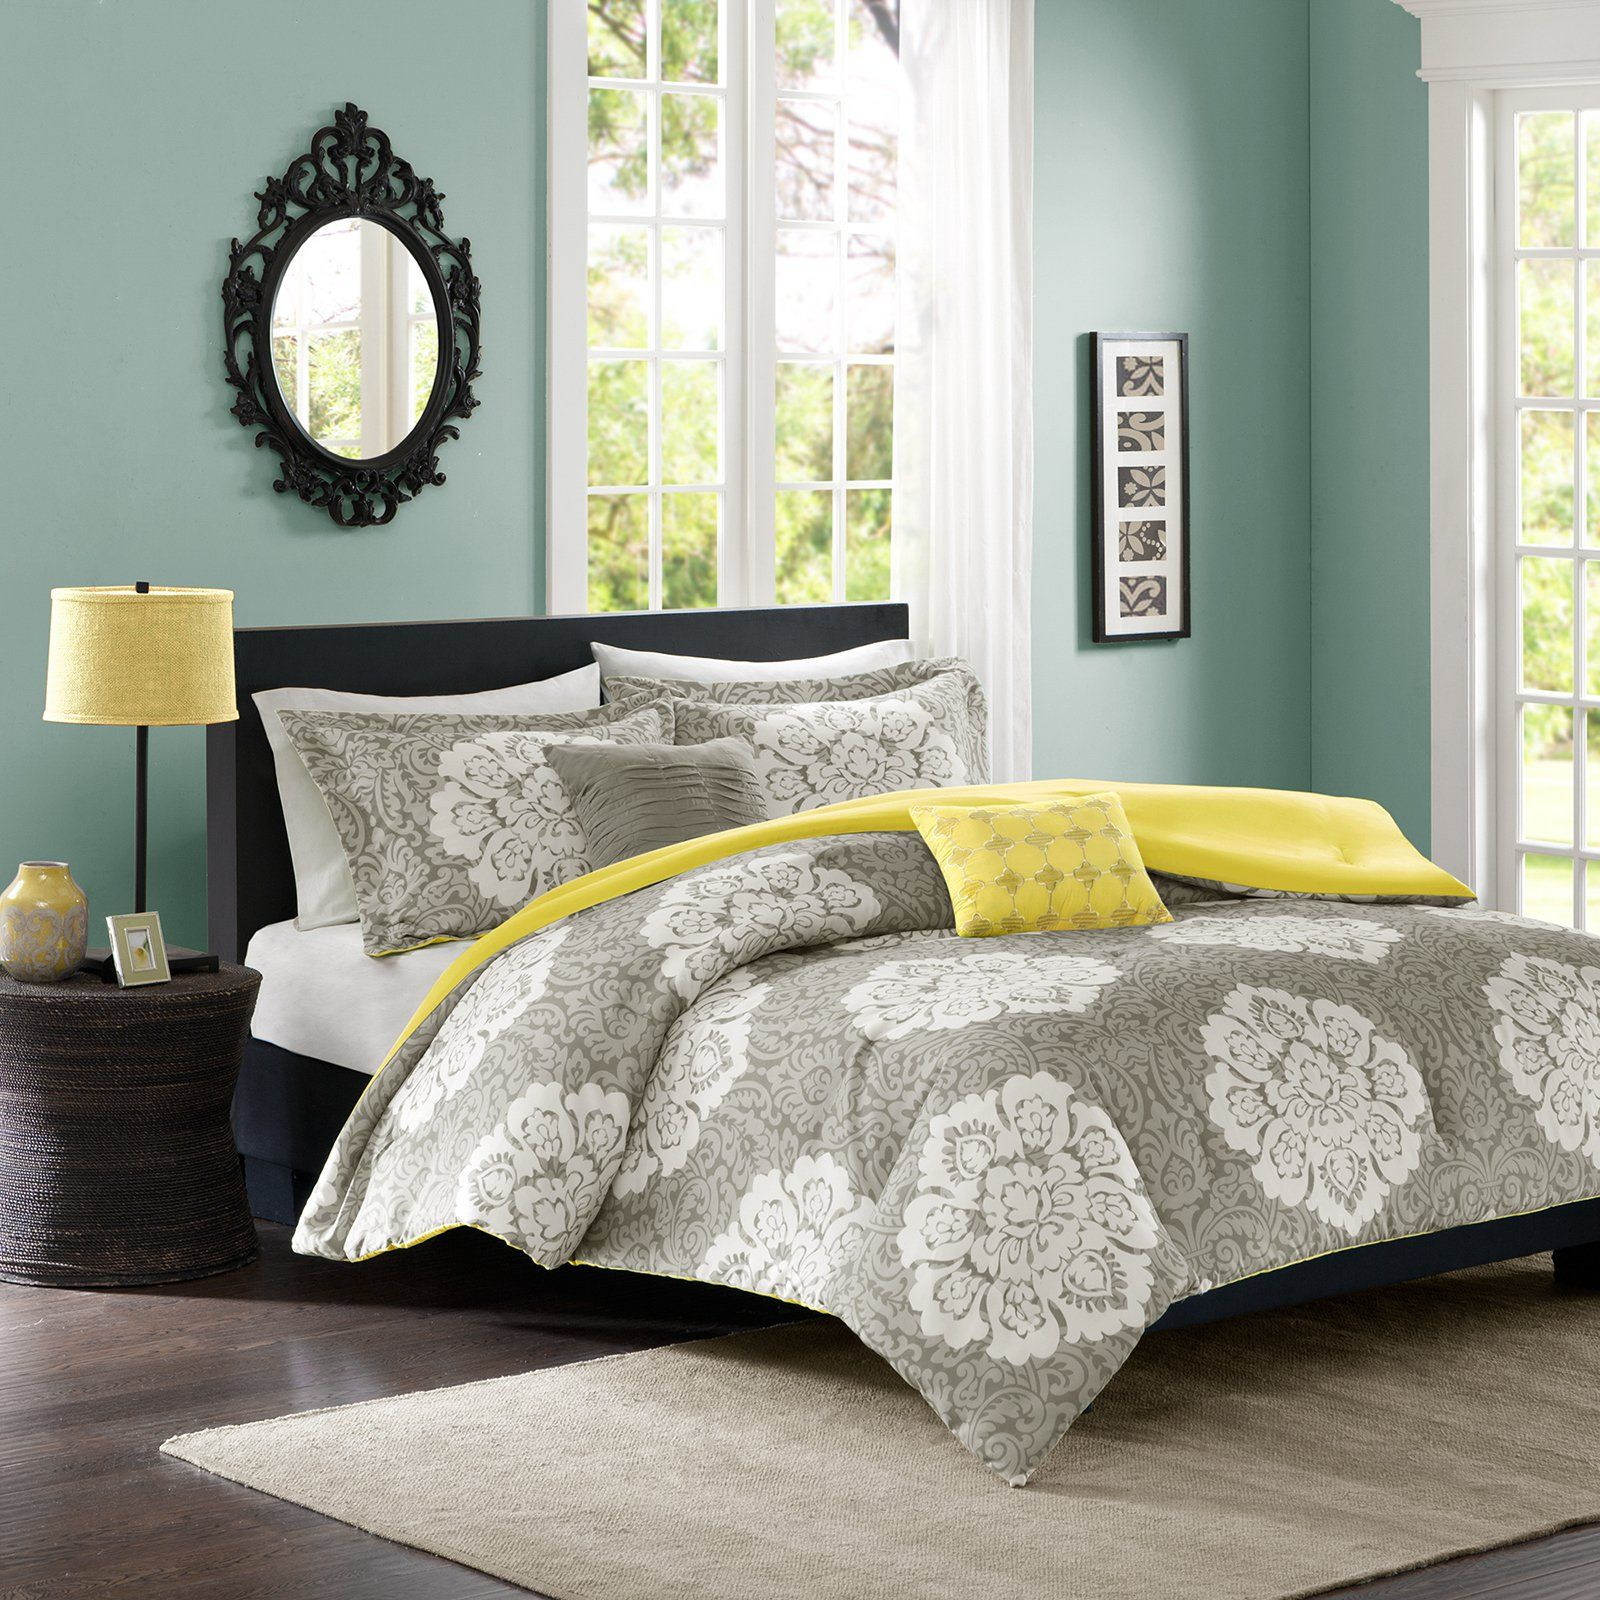 bed twin black sets queen grey king bedding full comforter furniture bedroom blue navy set size down white and